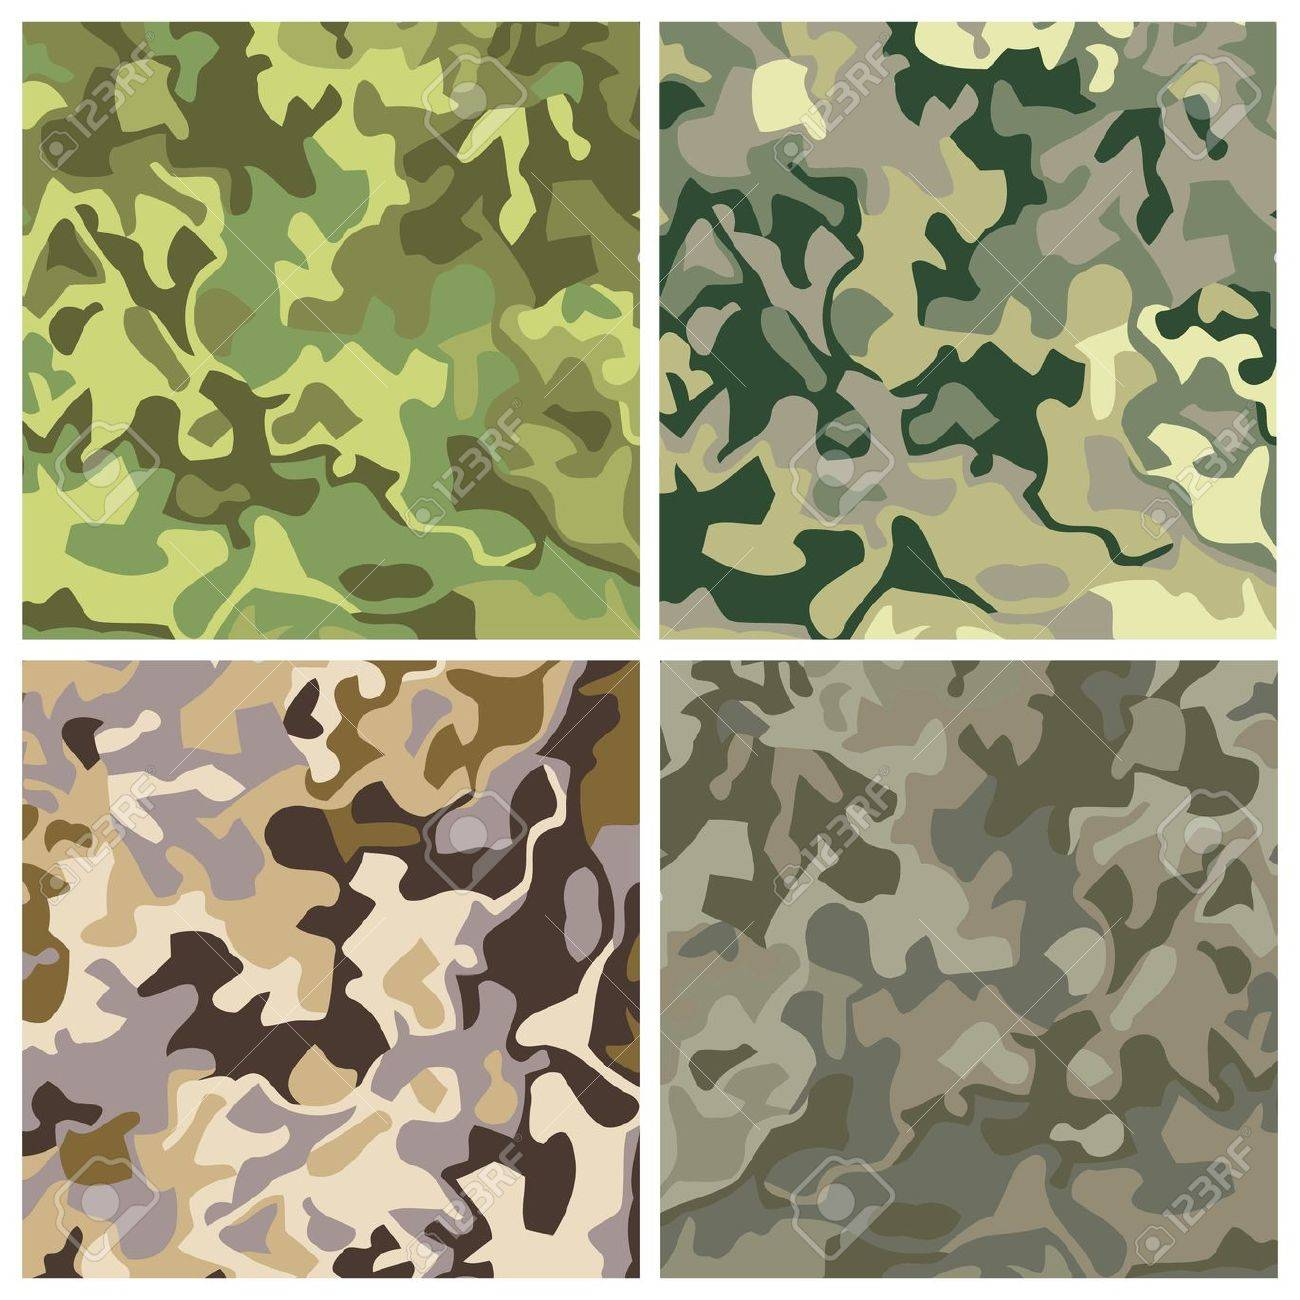 new royalty free set of military camouflage backgrounds Stock Vector - 16195150